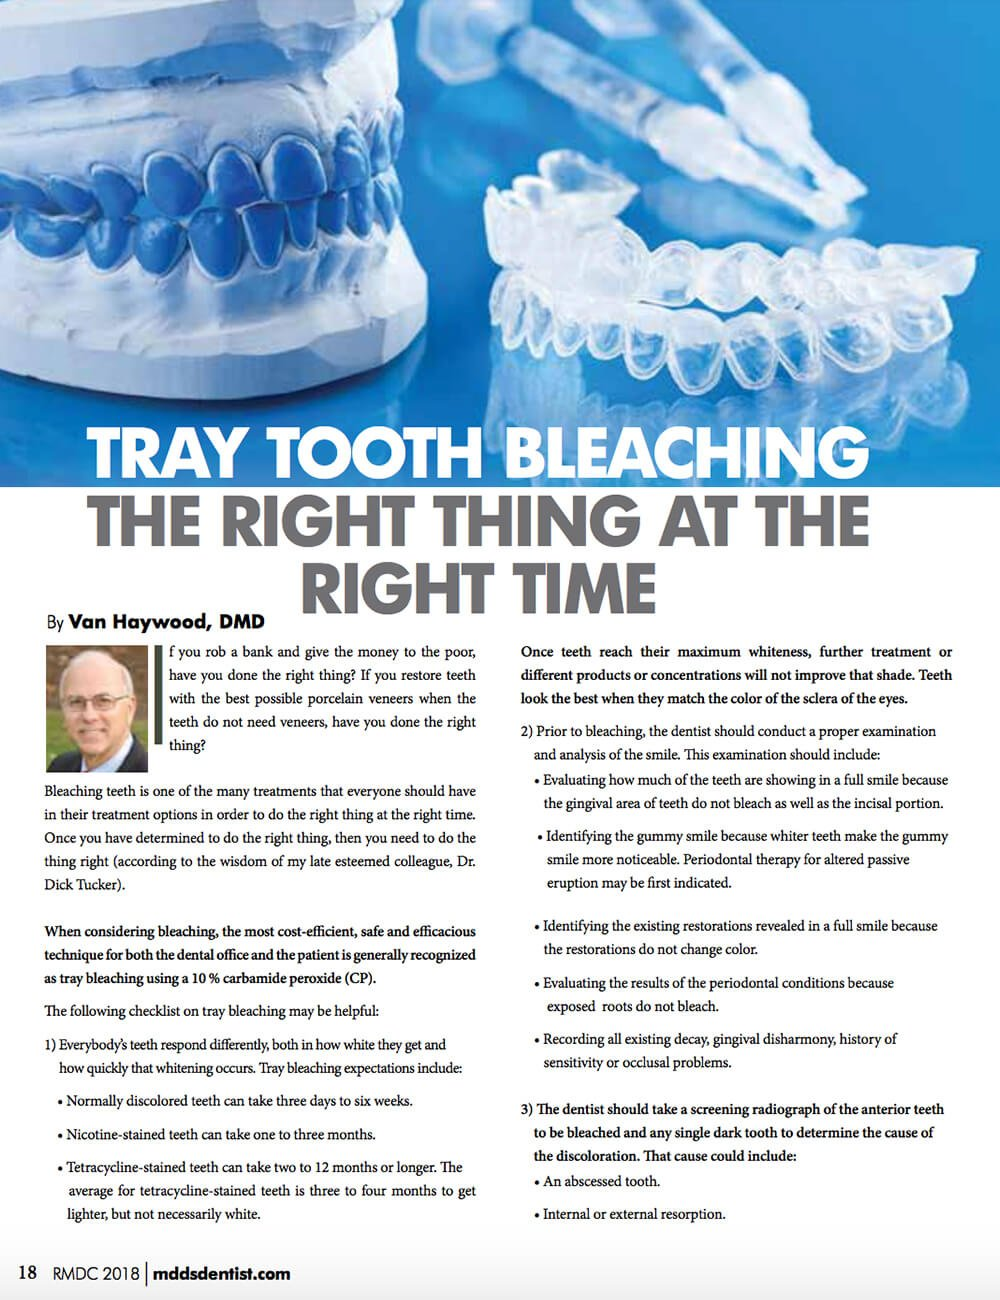 Article on Tray Tooth Bleaching - The Right Thing At the Right Time